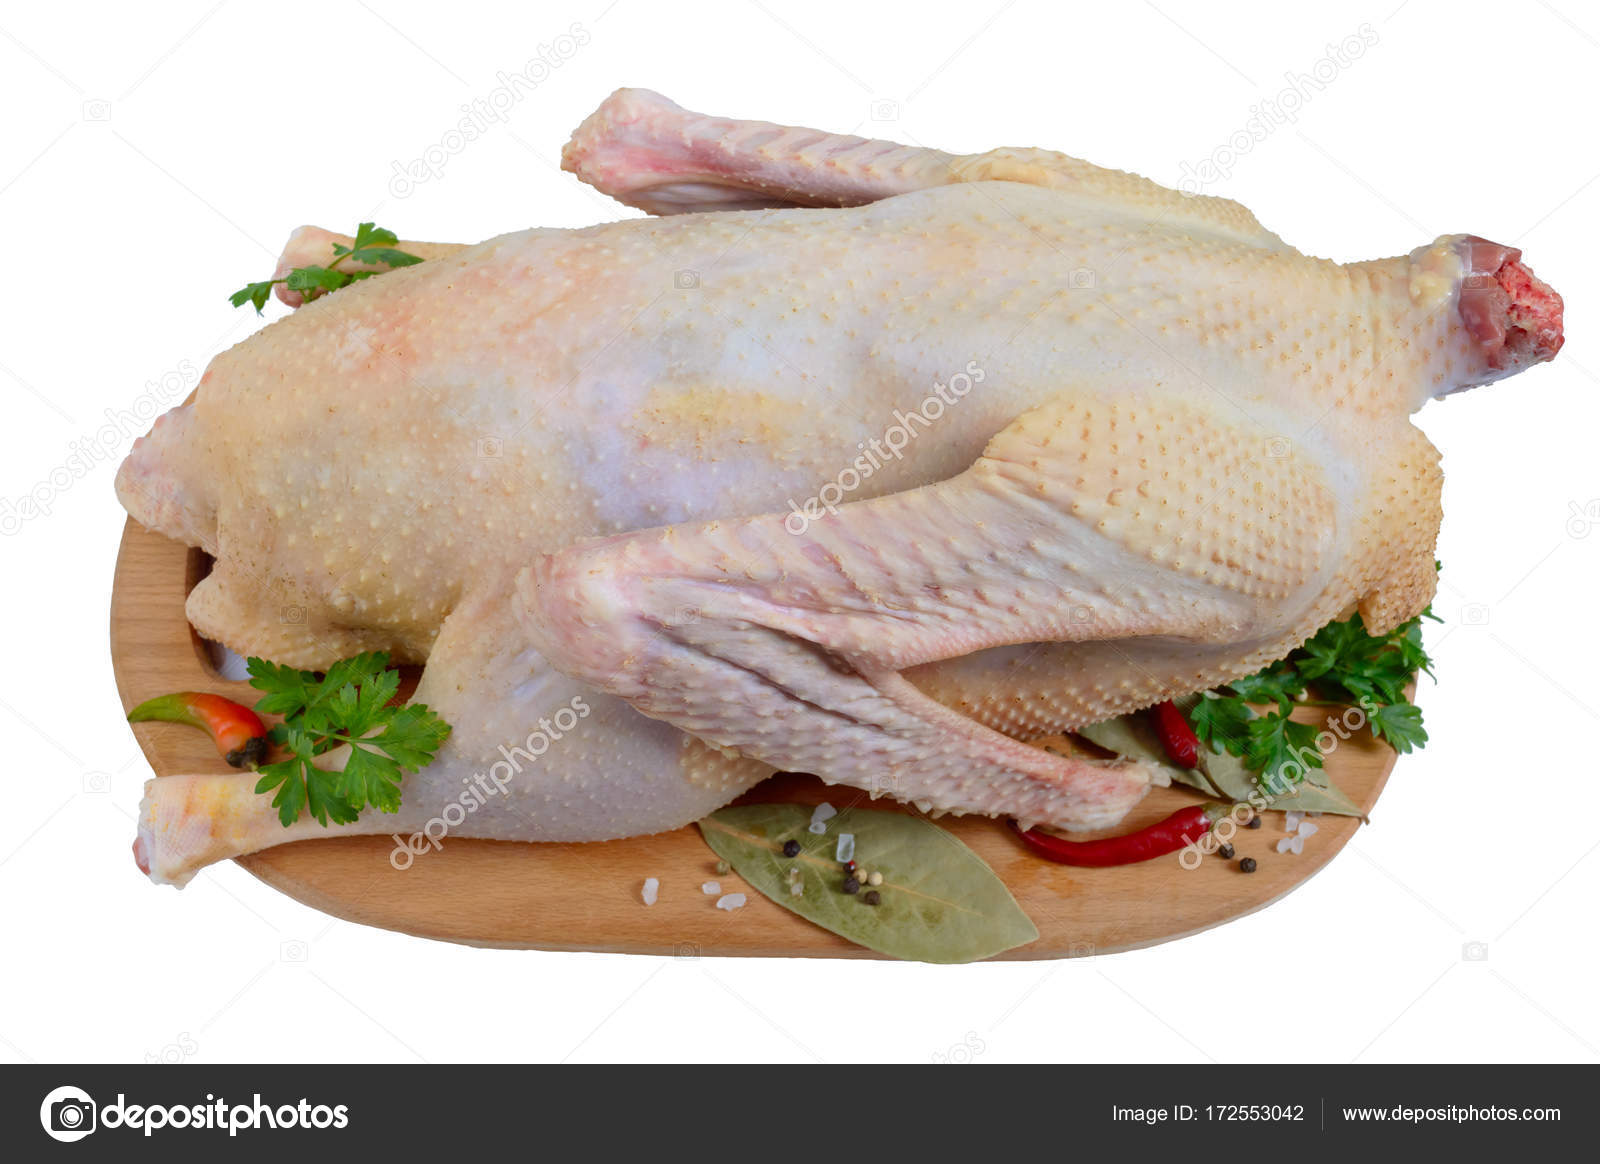 A raw goose ready to cook on a cutting board isolated on a white a raw goose ready to cook on a cutting board isolated on a white background christmas menu photo by iaroshenkorinaail forumfinder Choice Image